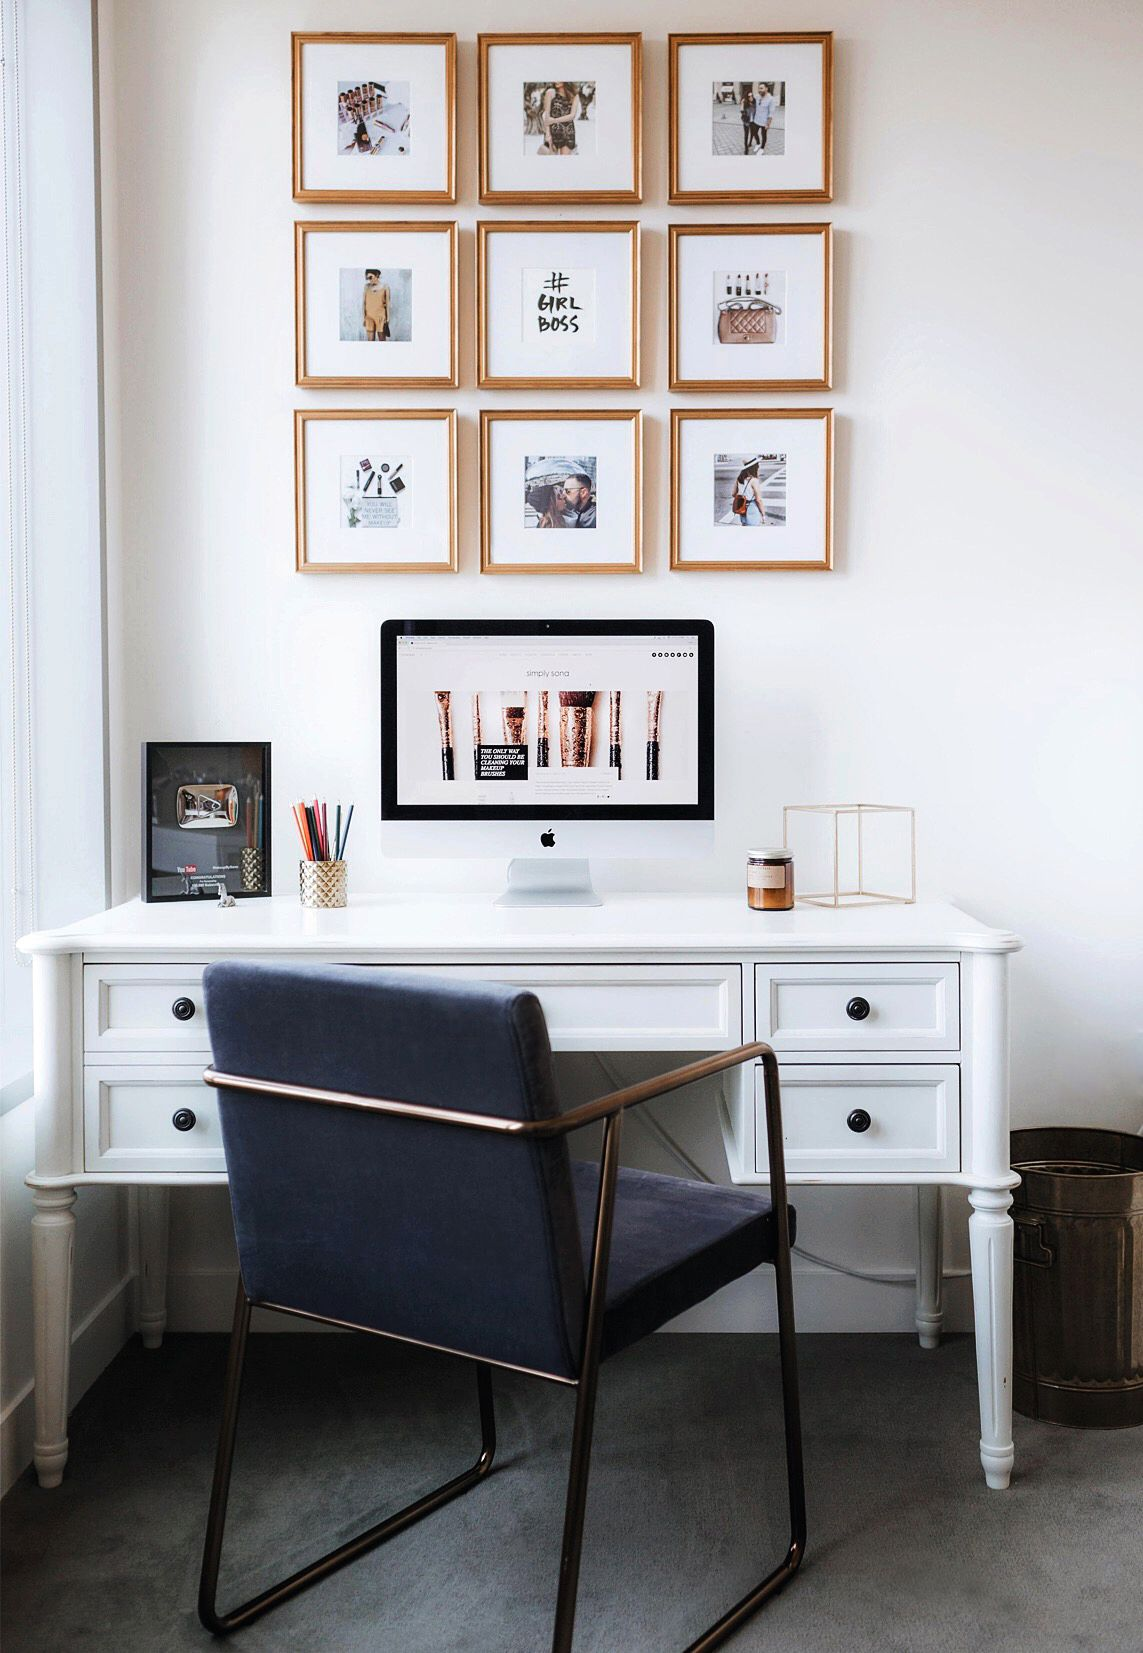 How to design and hang a grid gallery wall.   Pro tip: we recommend featuring one gallery frame style and one standard frame size.  The unity will help you hang the finished display in your space!